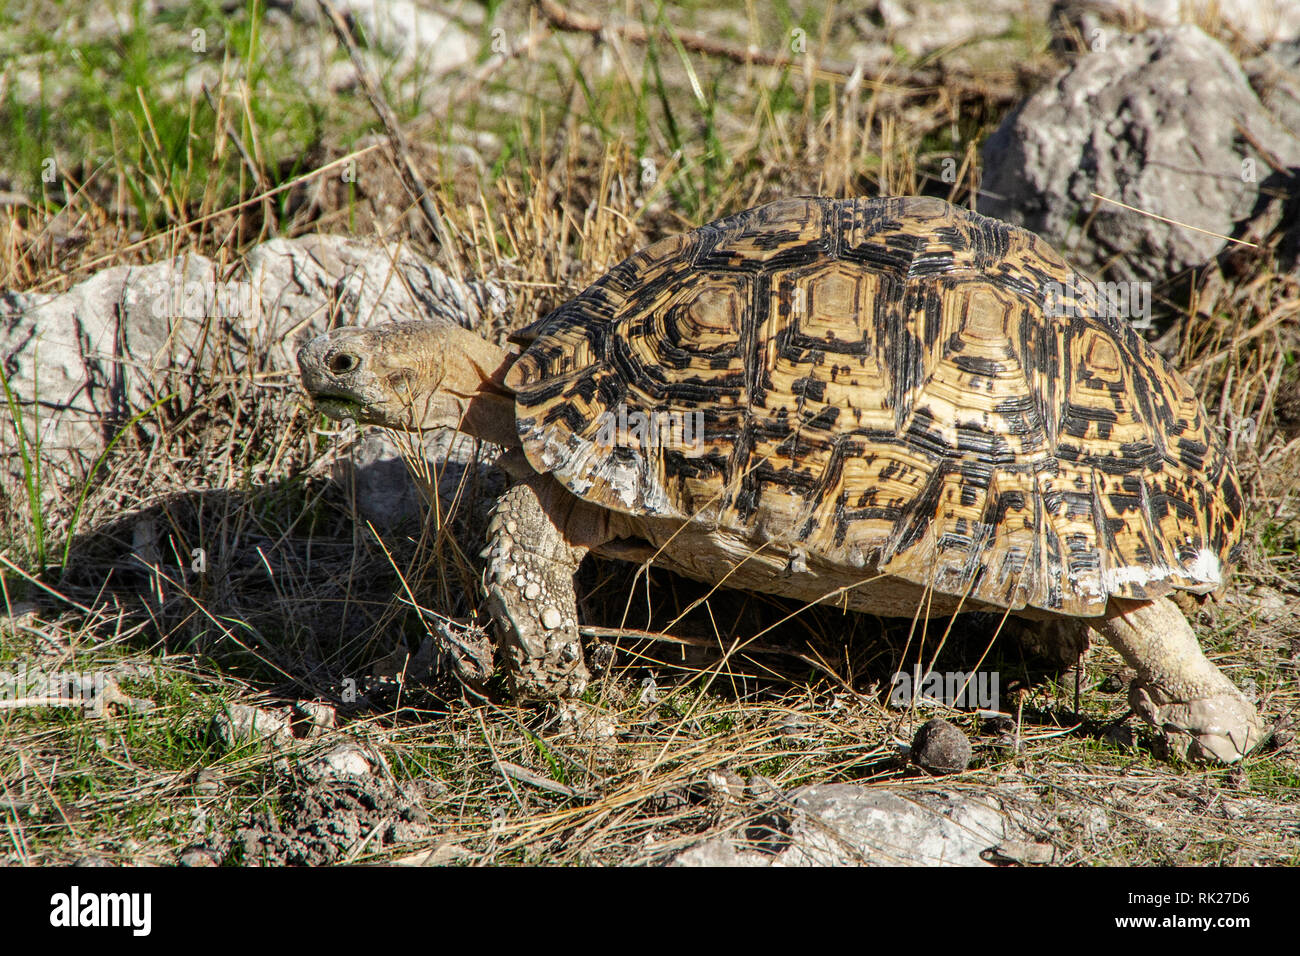 A leopard tortoise, Stigmochelys pardalis, walking amongst rocks and grass in Etosha. - Stock Image